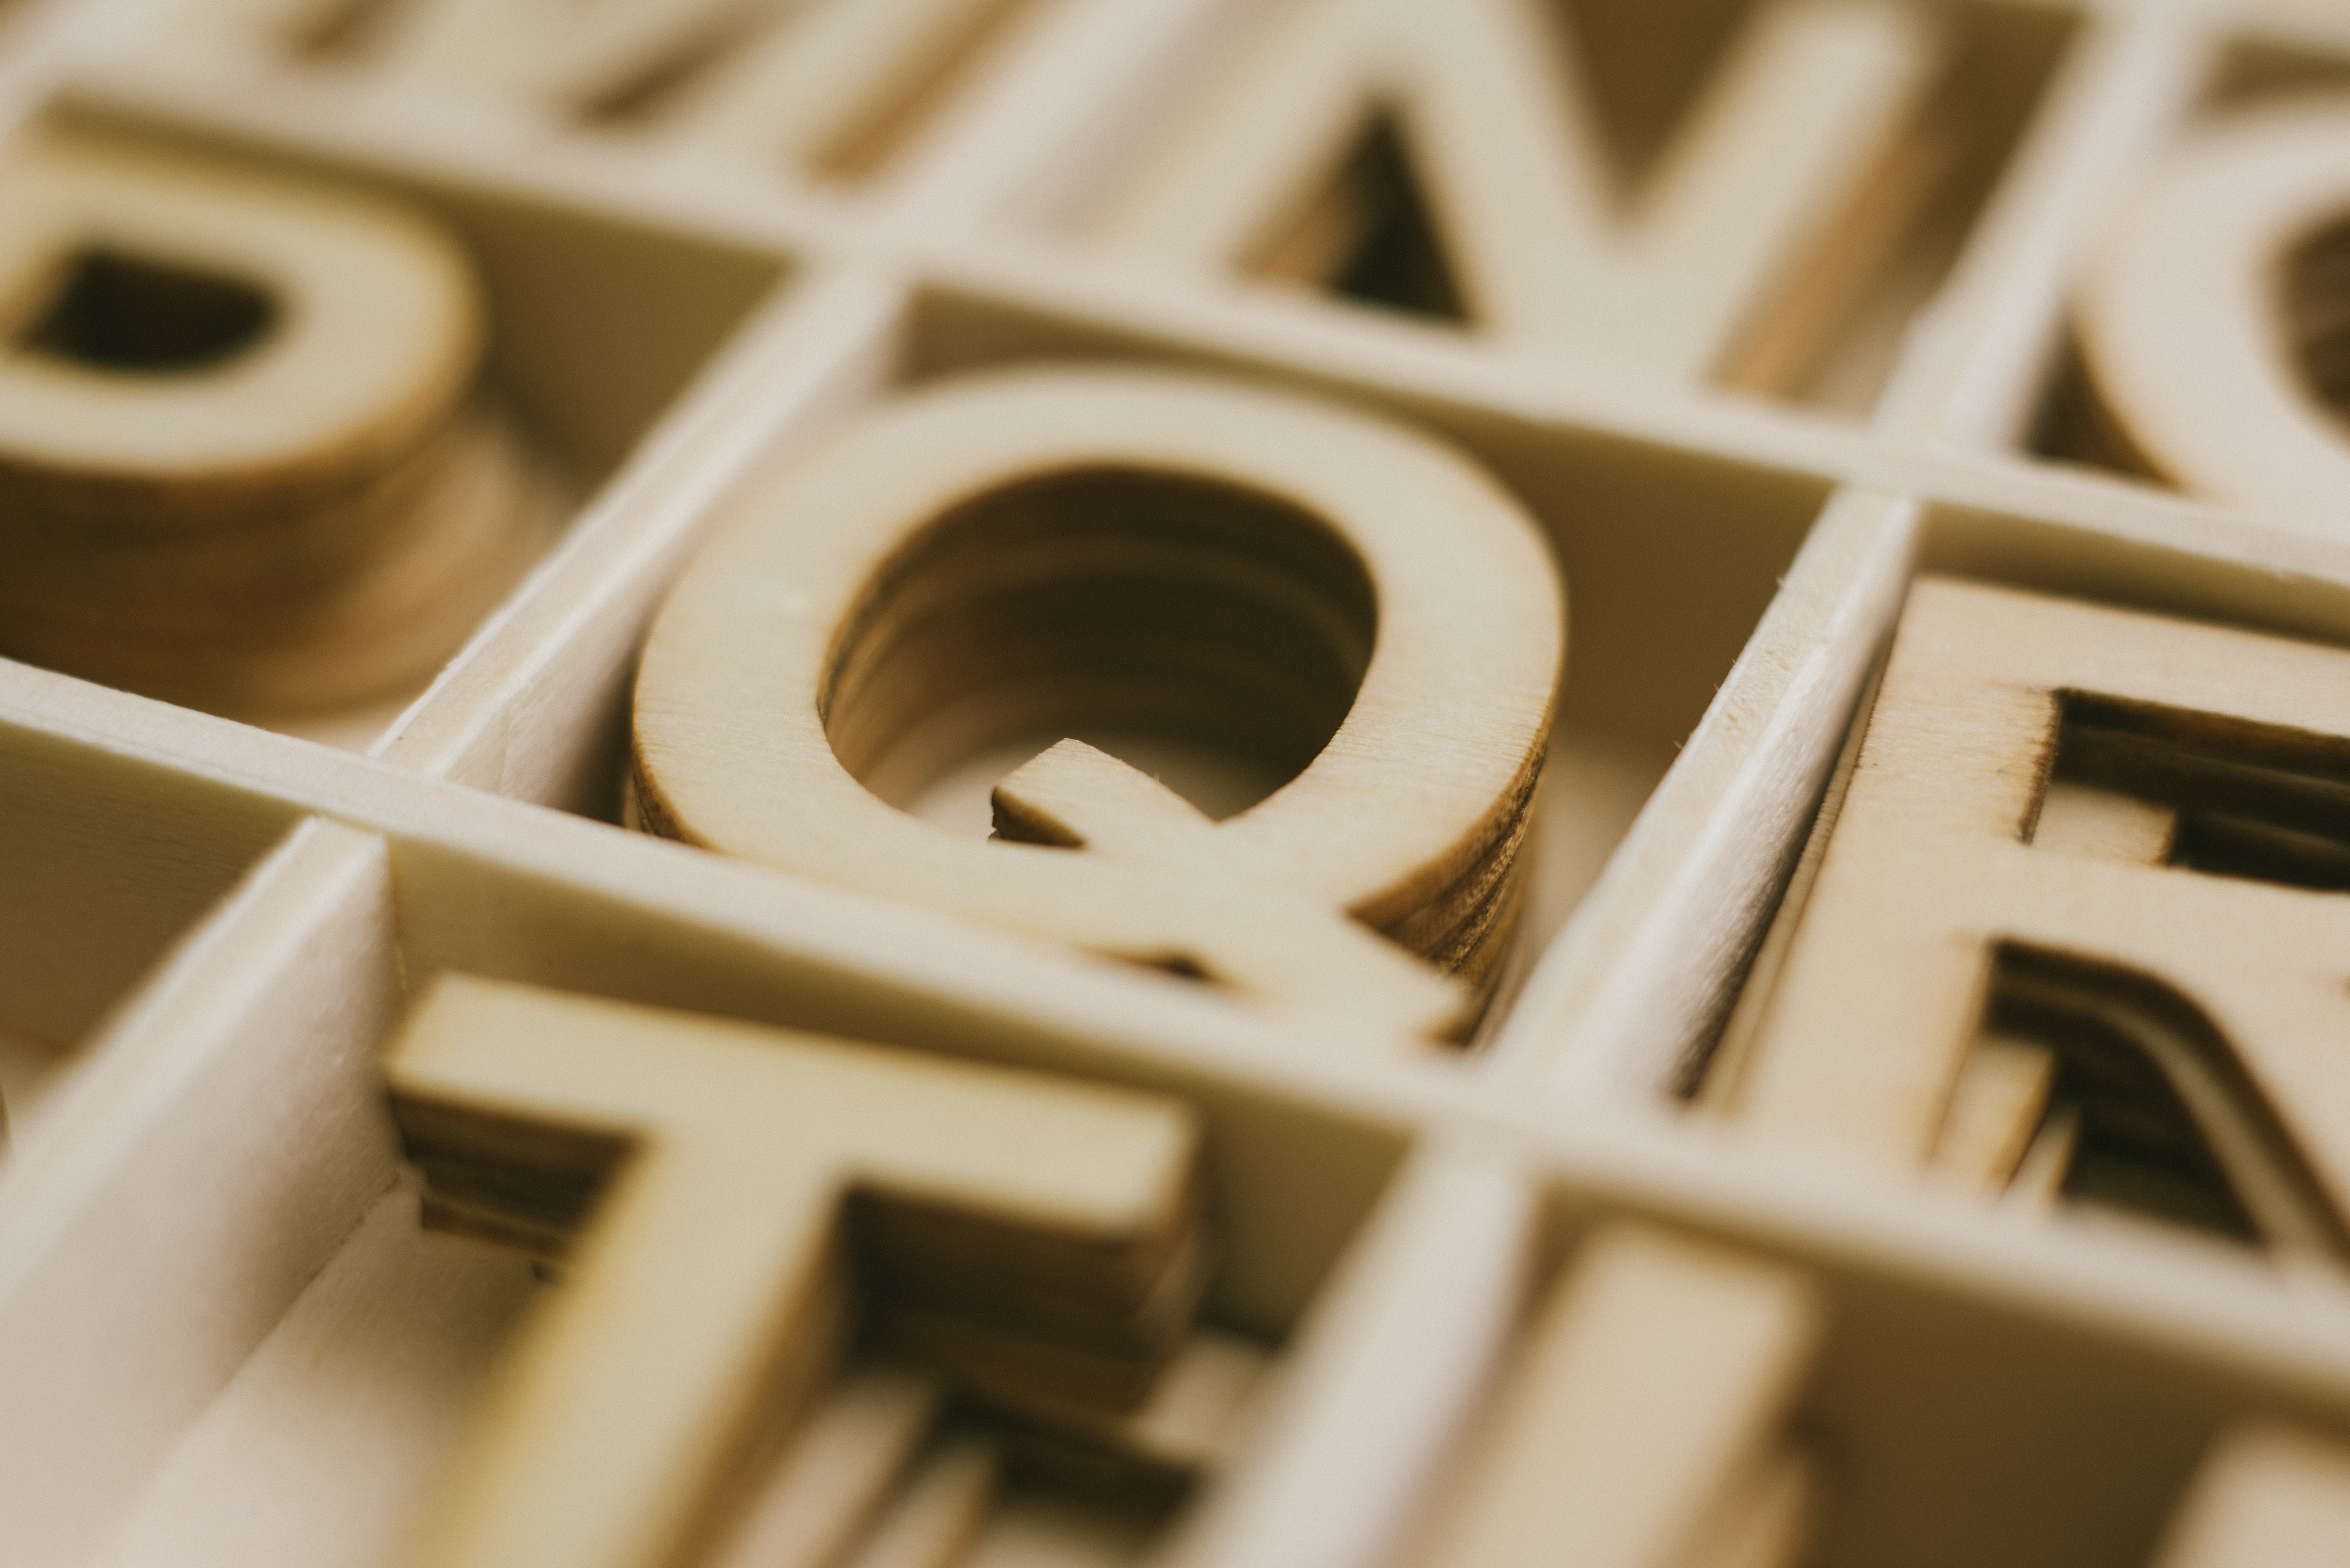 Depth of Field Photography of Q Alphabet Sticker, Blur, Boxes, Close -up, Design, HQ Photo